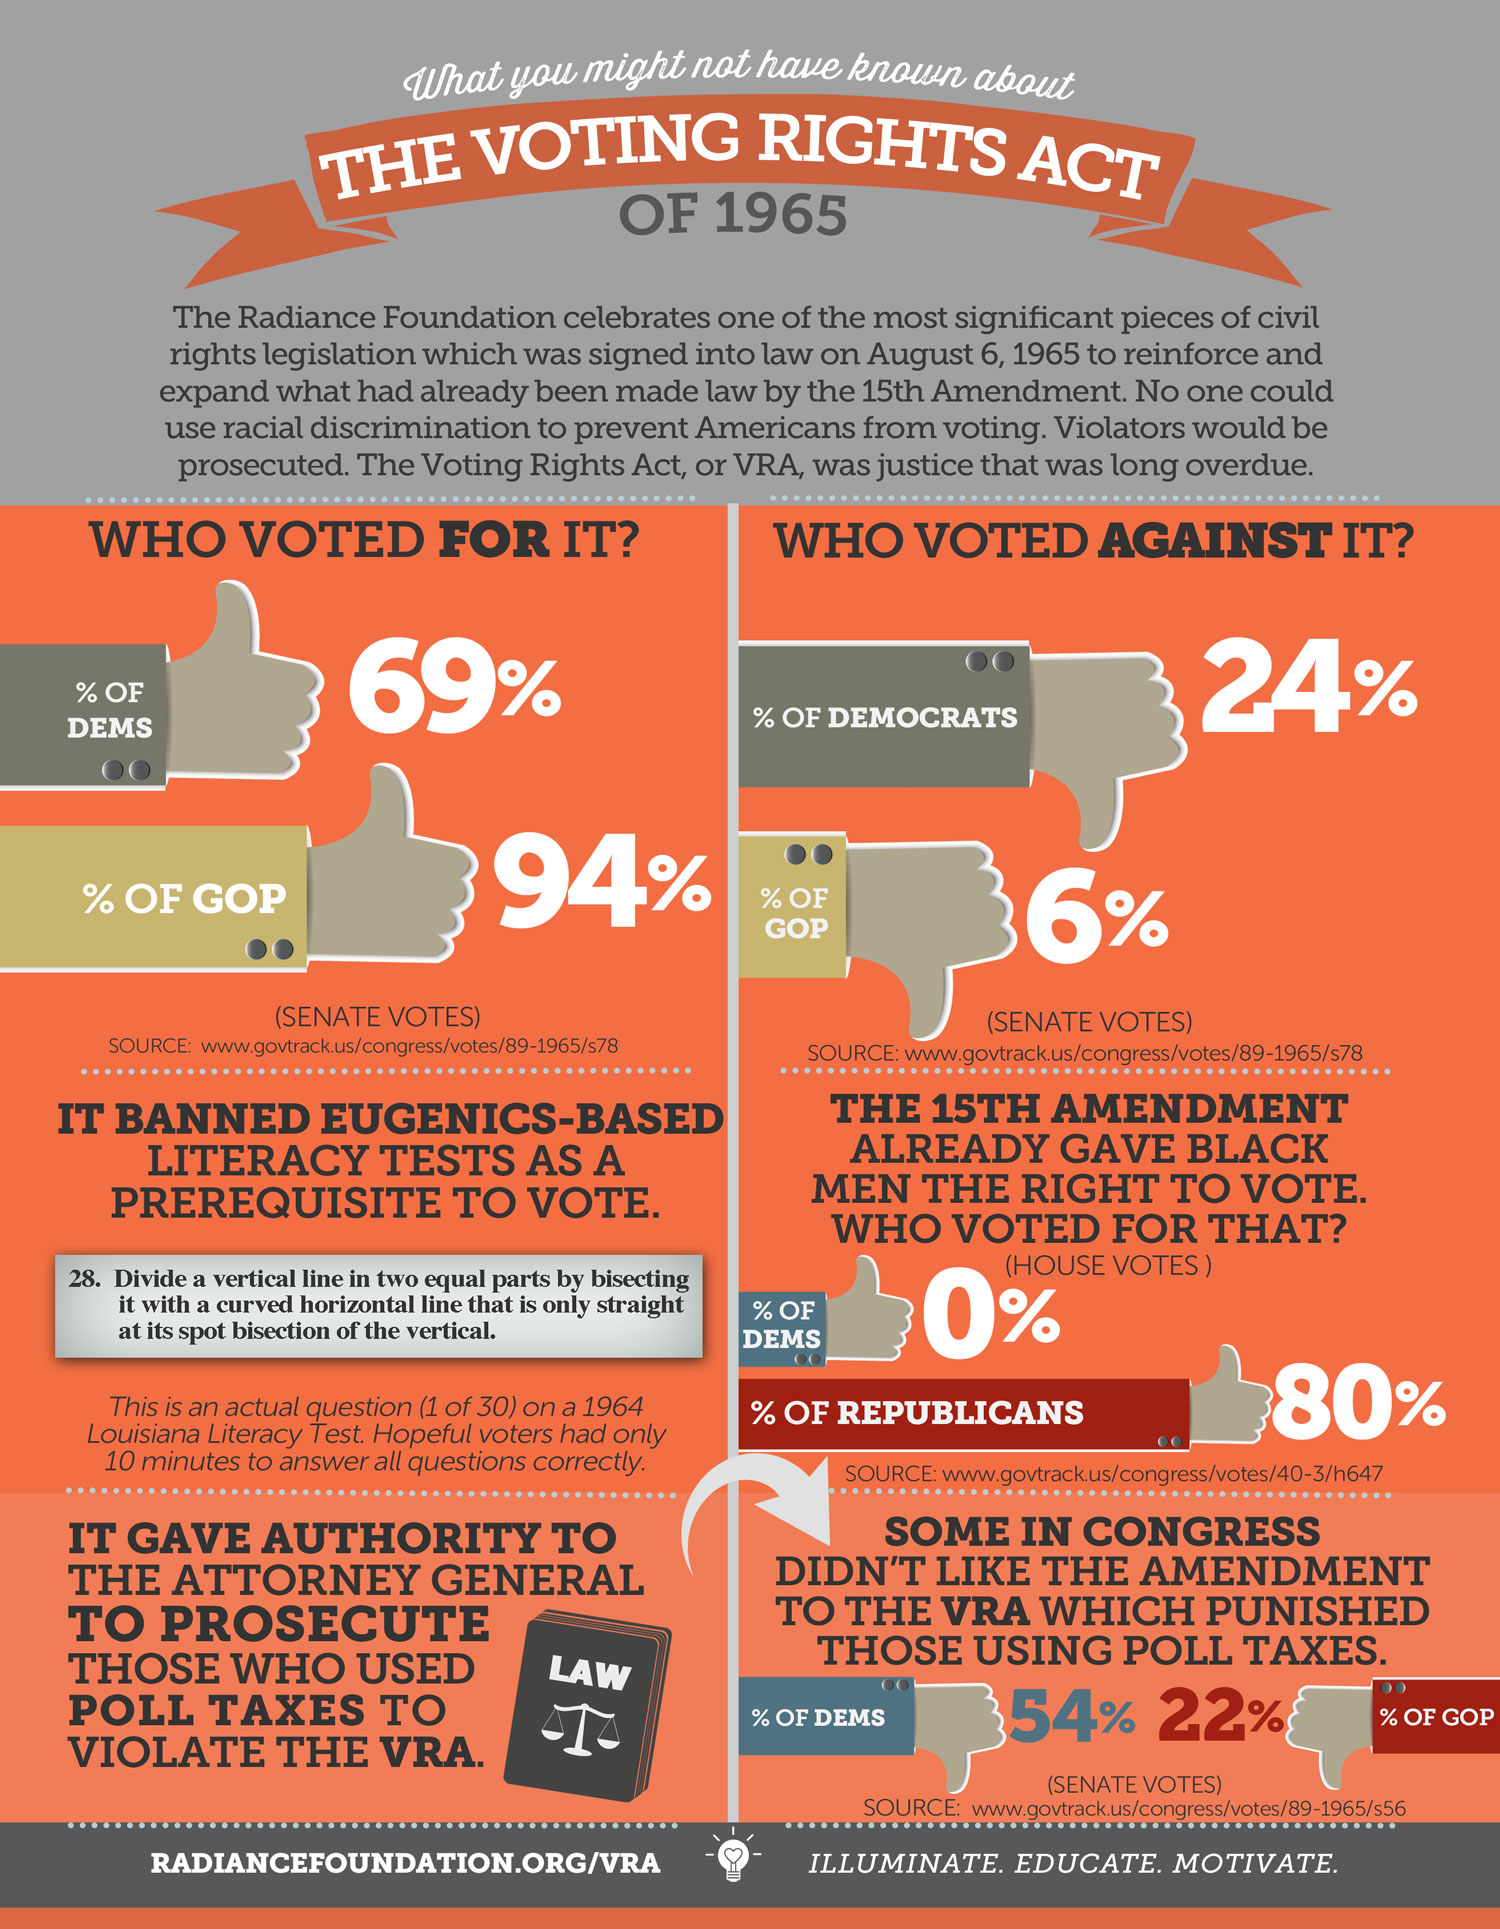 """Voting Rights Act"" by The Radiance Foundation"